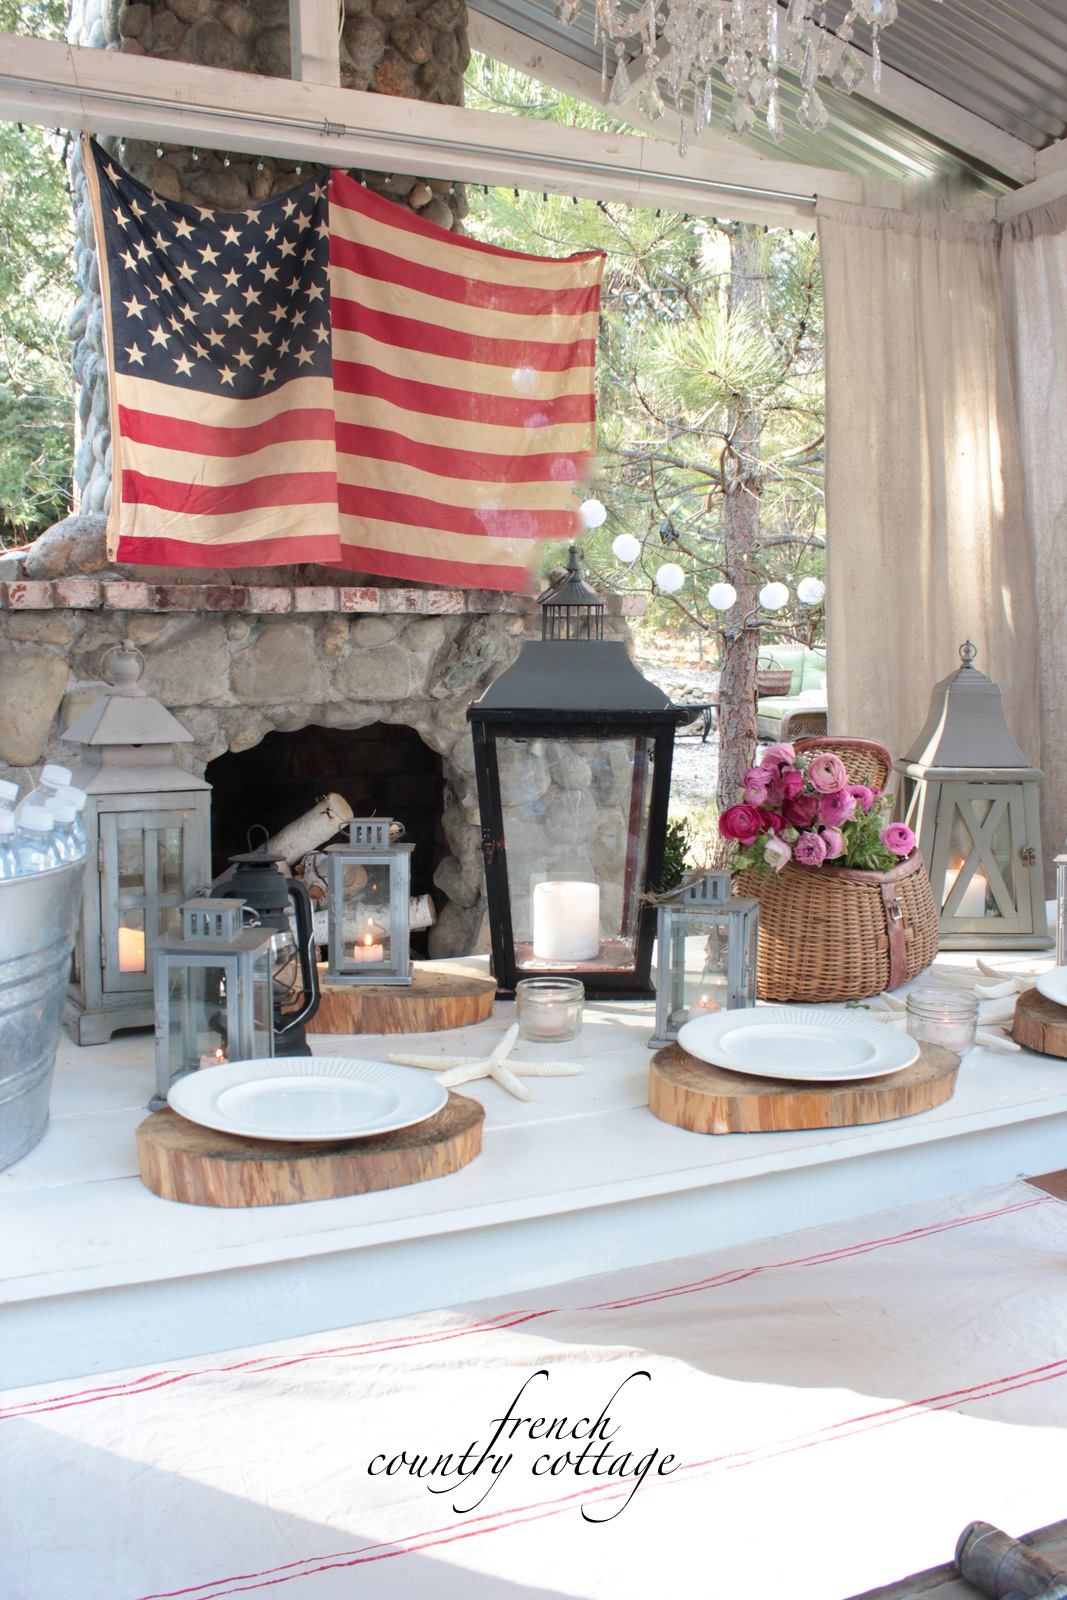 Inspirations Cozy Lowes Linoleum Flooring For Classy: FRENCH COUNTRY COTTAGE